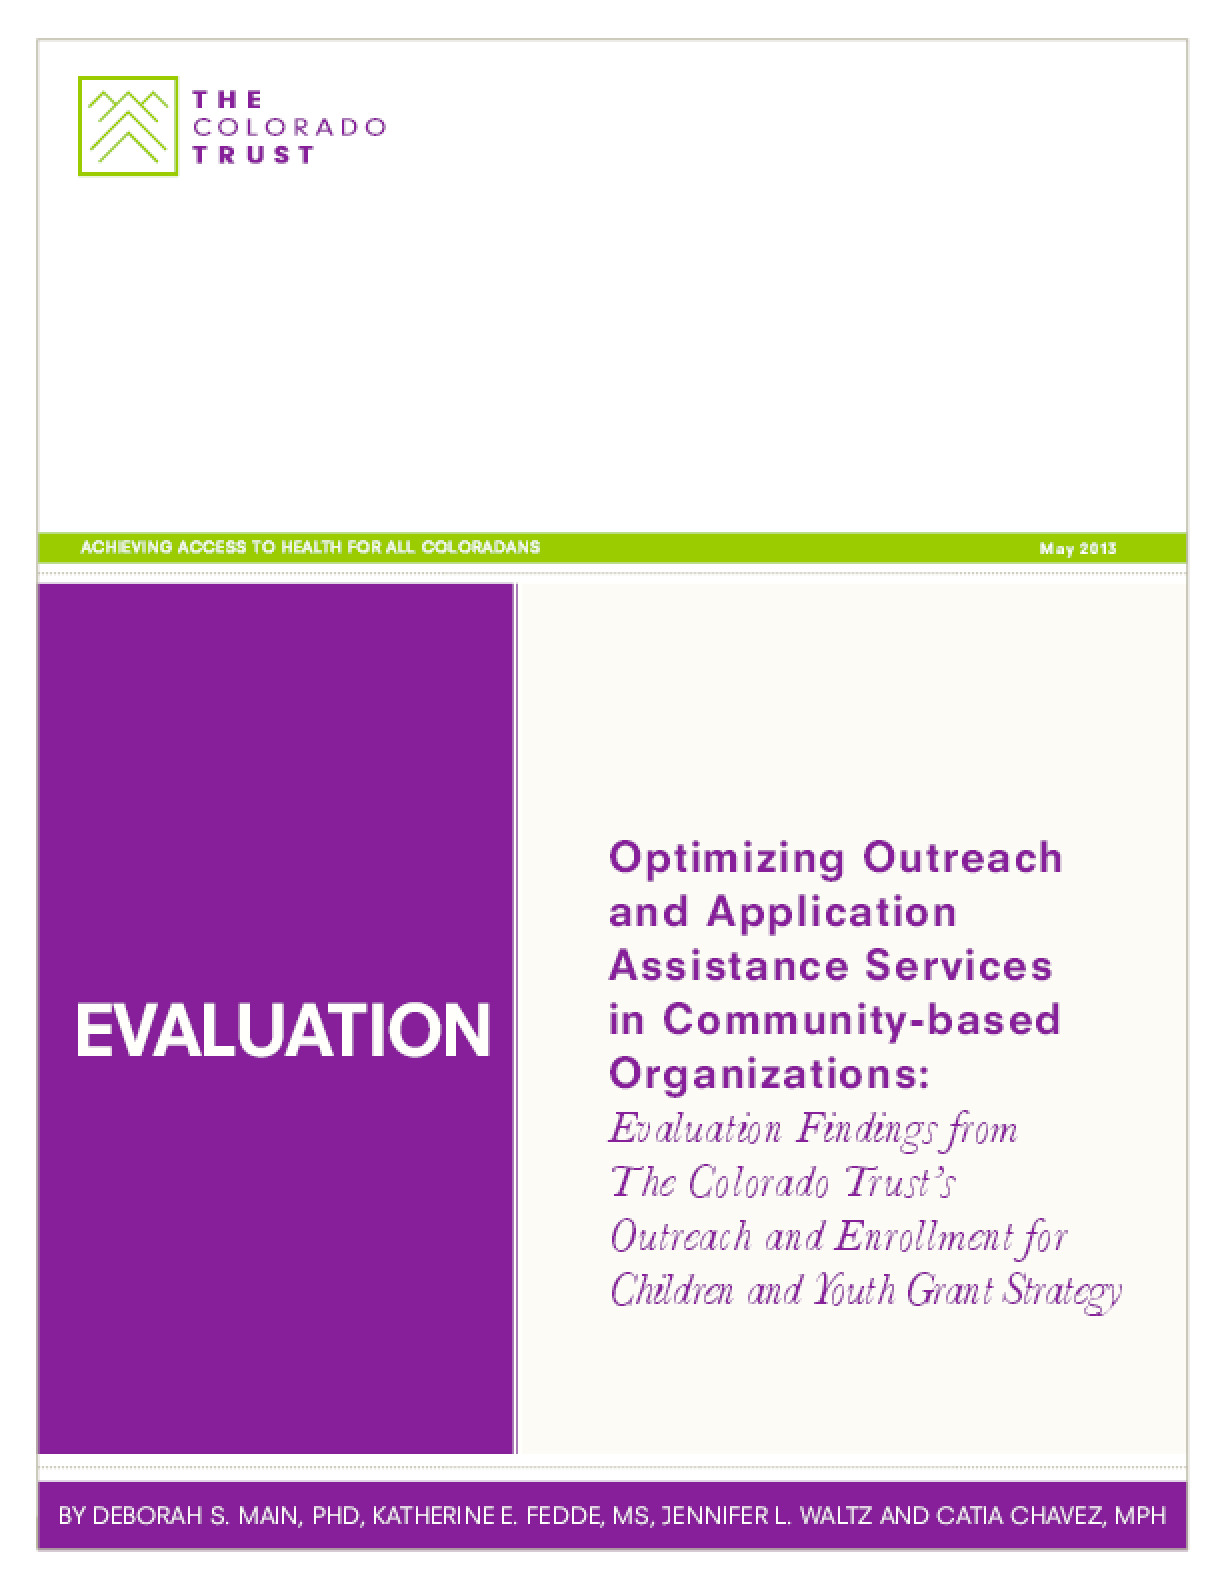 Optimizing Outreach and Application Assistance Services in Community-based Organizations: Evaluation Findings from The Colorado Trust's Outreach and Enrollment for Children and Youth Grant Strategy